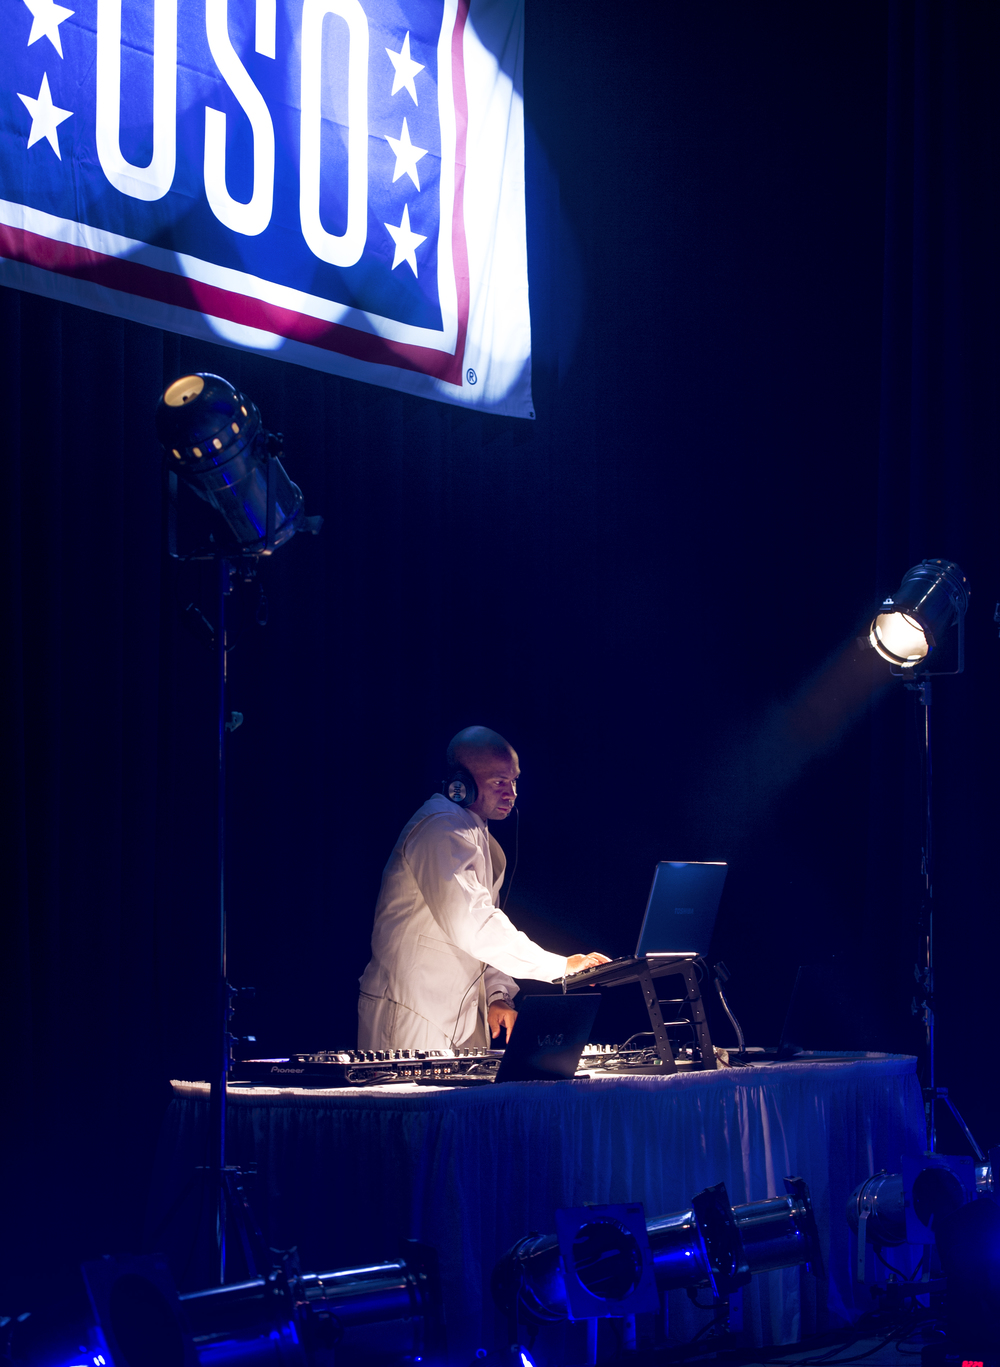 A performer with the United Service Organizations Empire tour plays music at Yokota Air Base, Japan, Dec. 15, 2015. In their visit to Yokota, the group participated in meet and greets, spoke with Yokota High School youth and hosted and performed a family-friendly White Party. (U.S. Air Force photo by Airman 1st Class Delano Scott/Released)